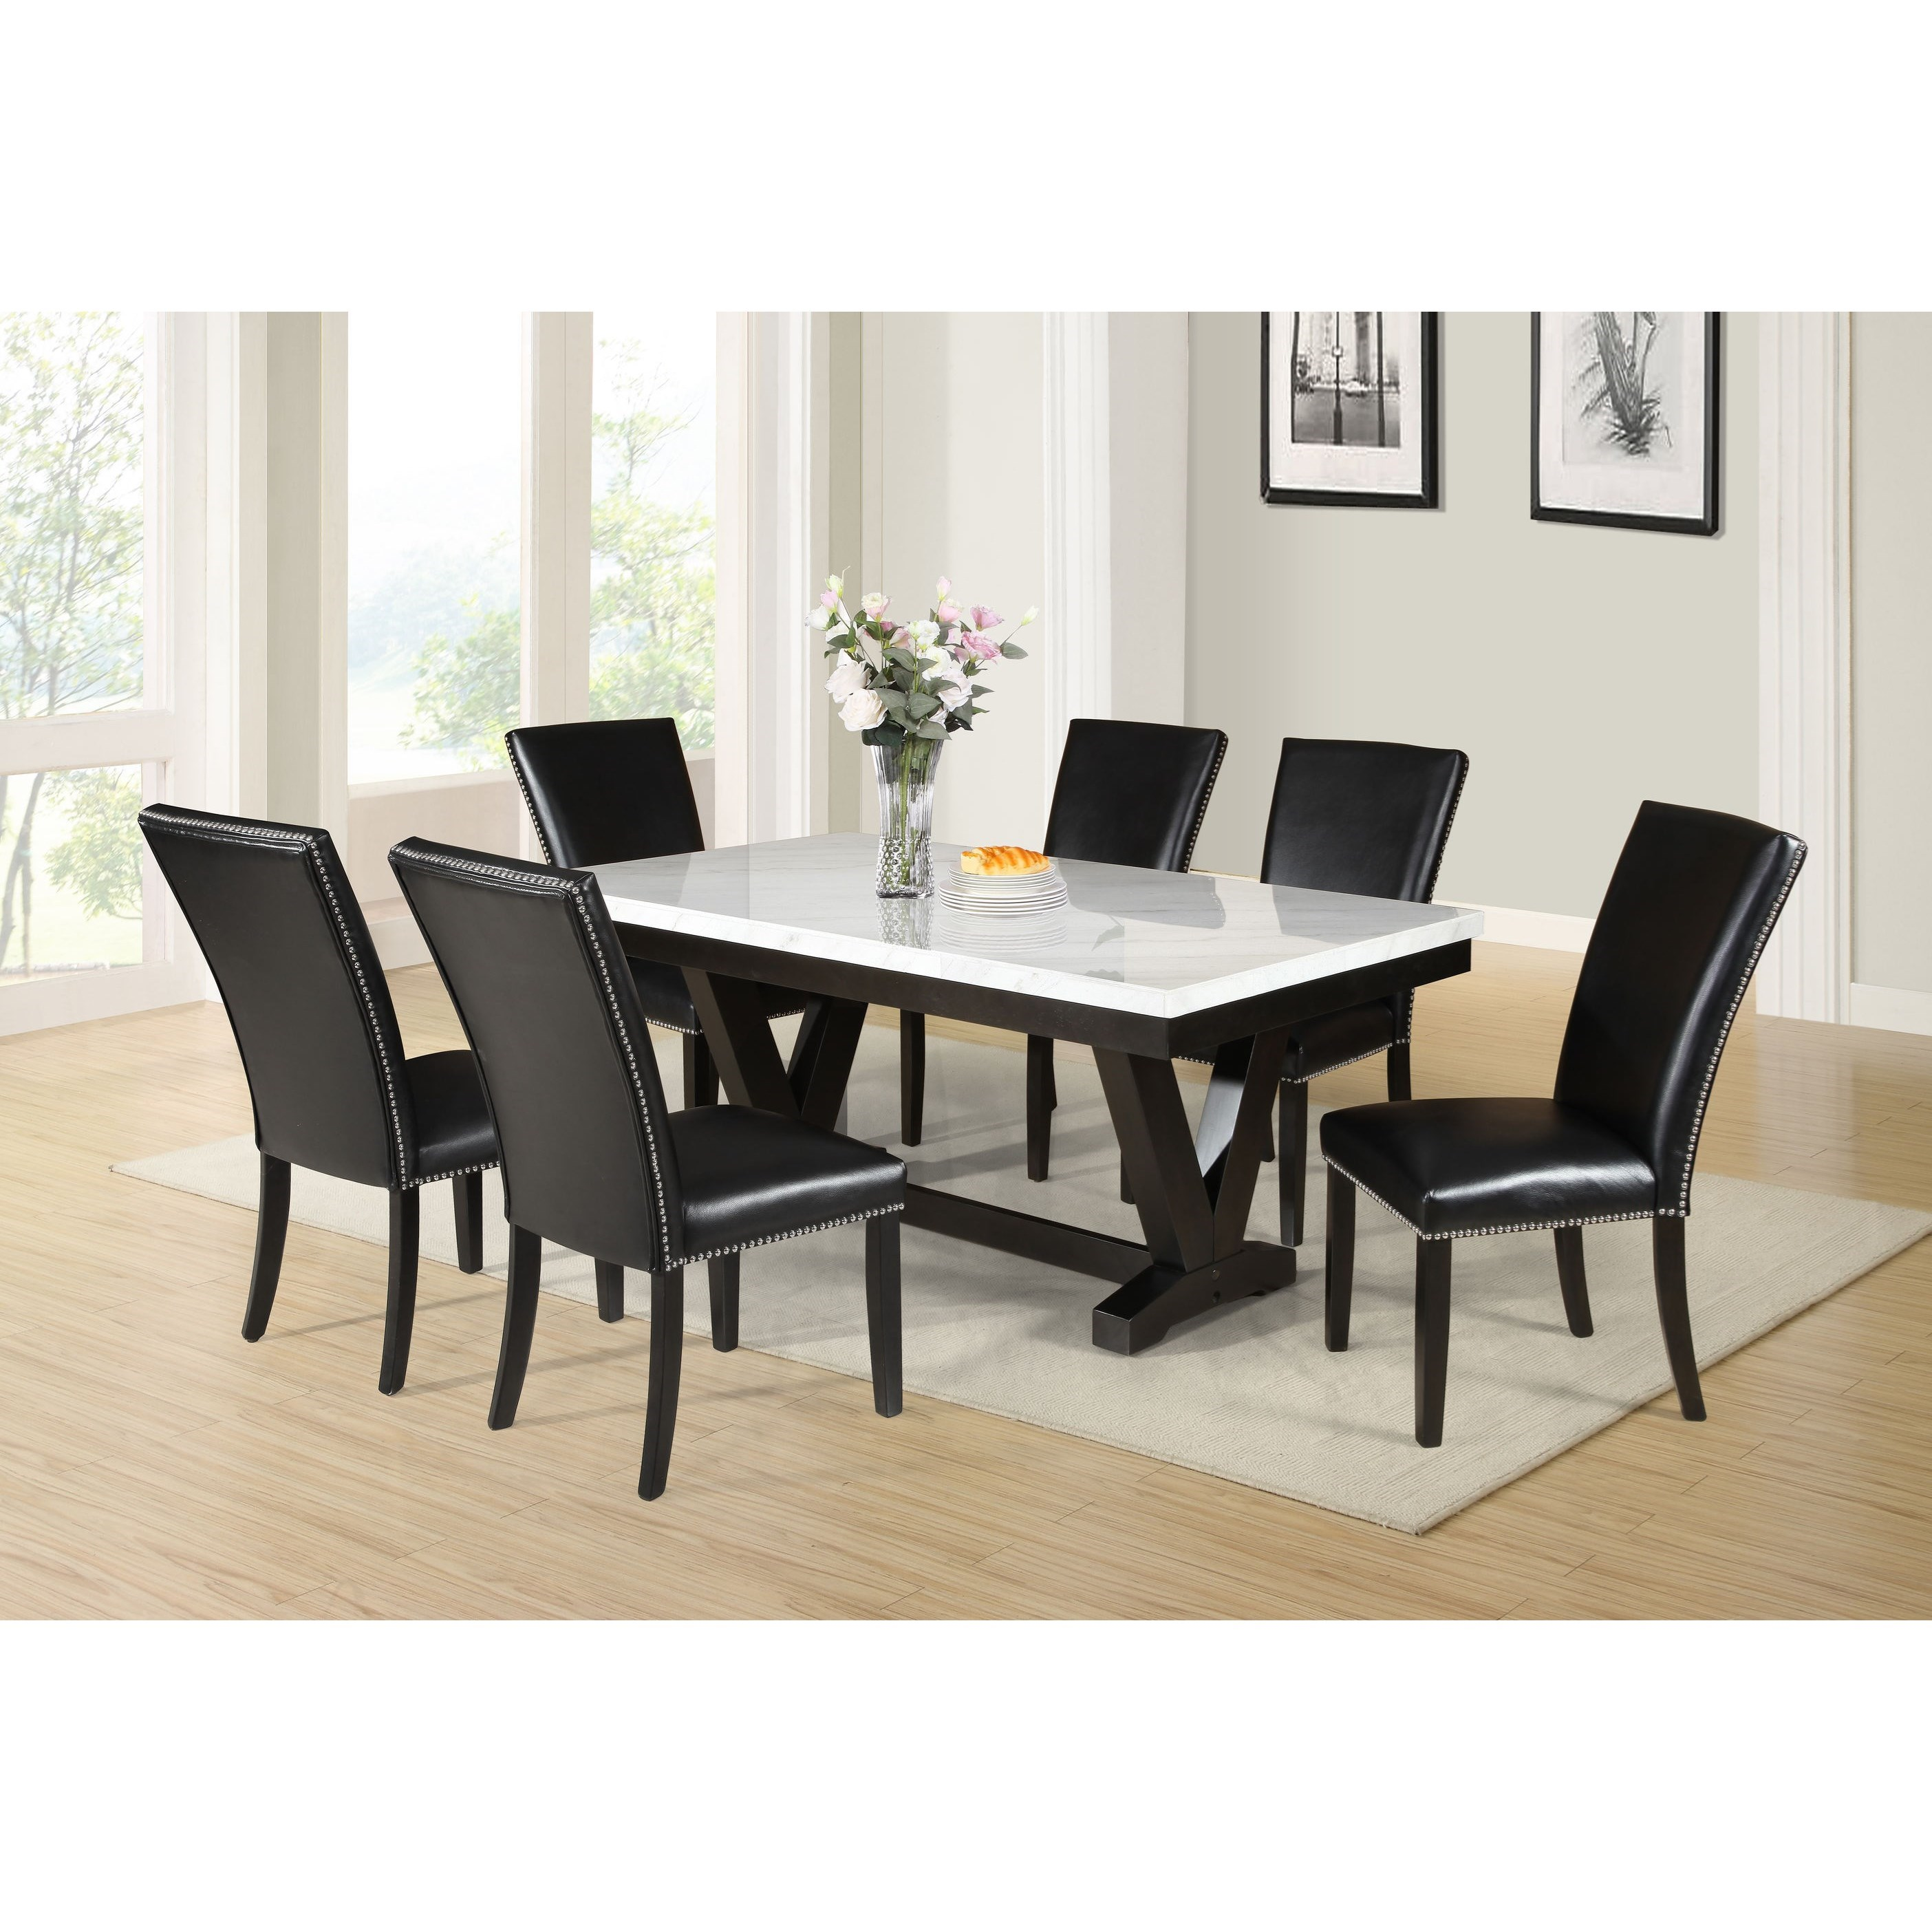 Finley 7-Piece Table and Chair Set by Steve Silver at Northeast Factory Direct